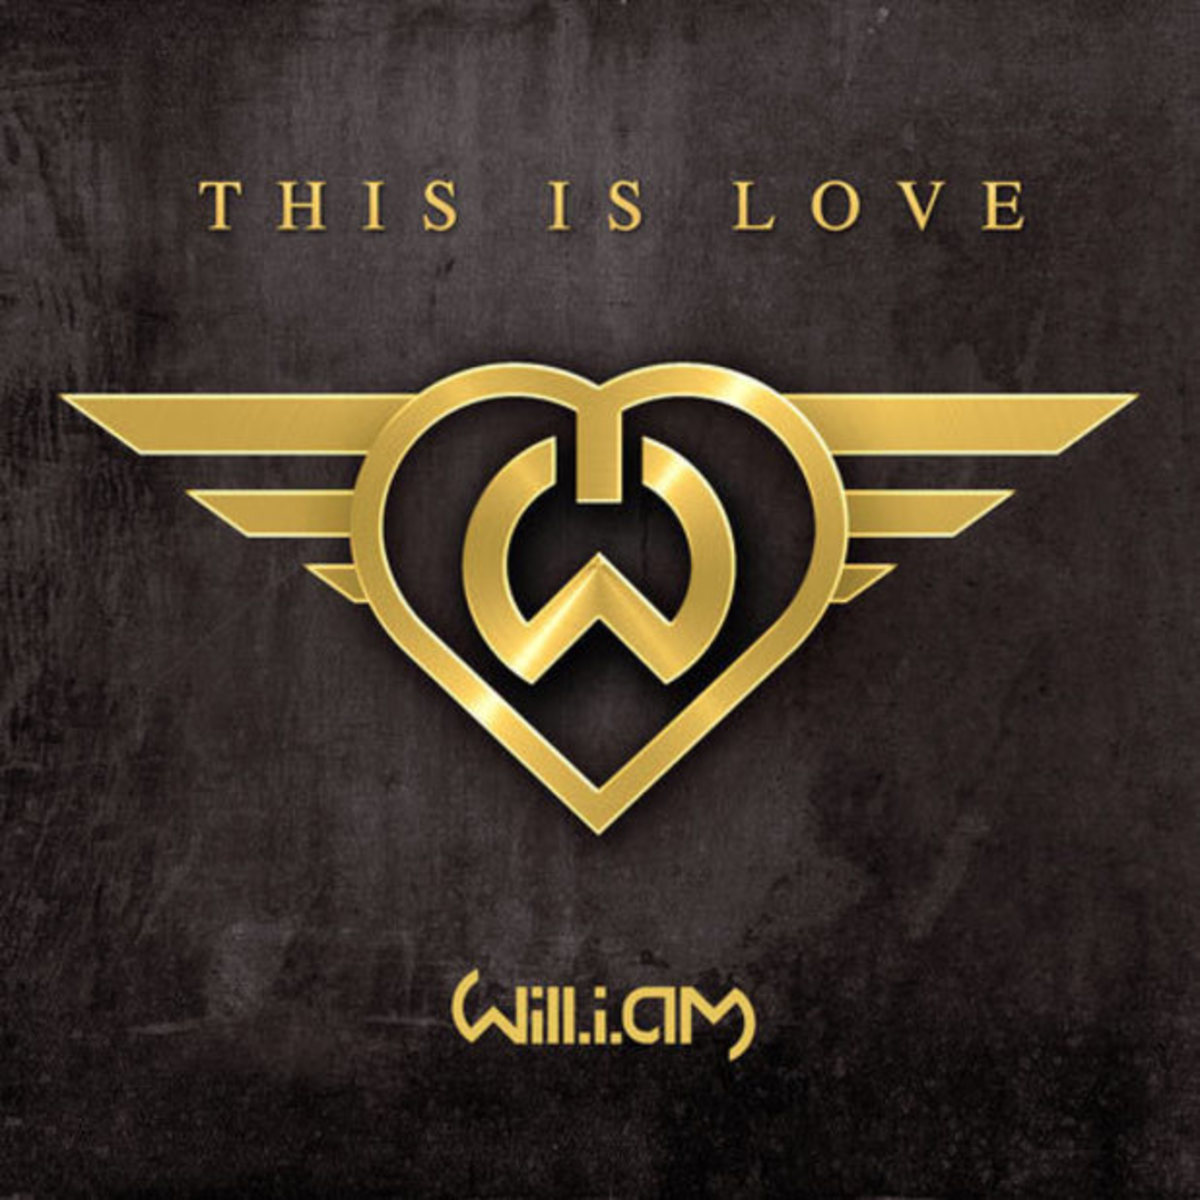 music_william_this_is_love